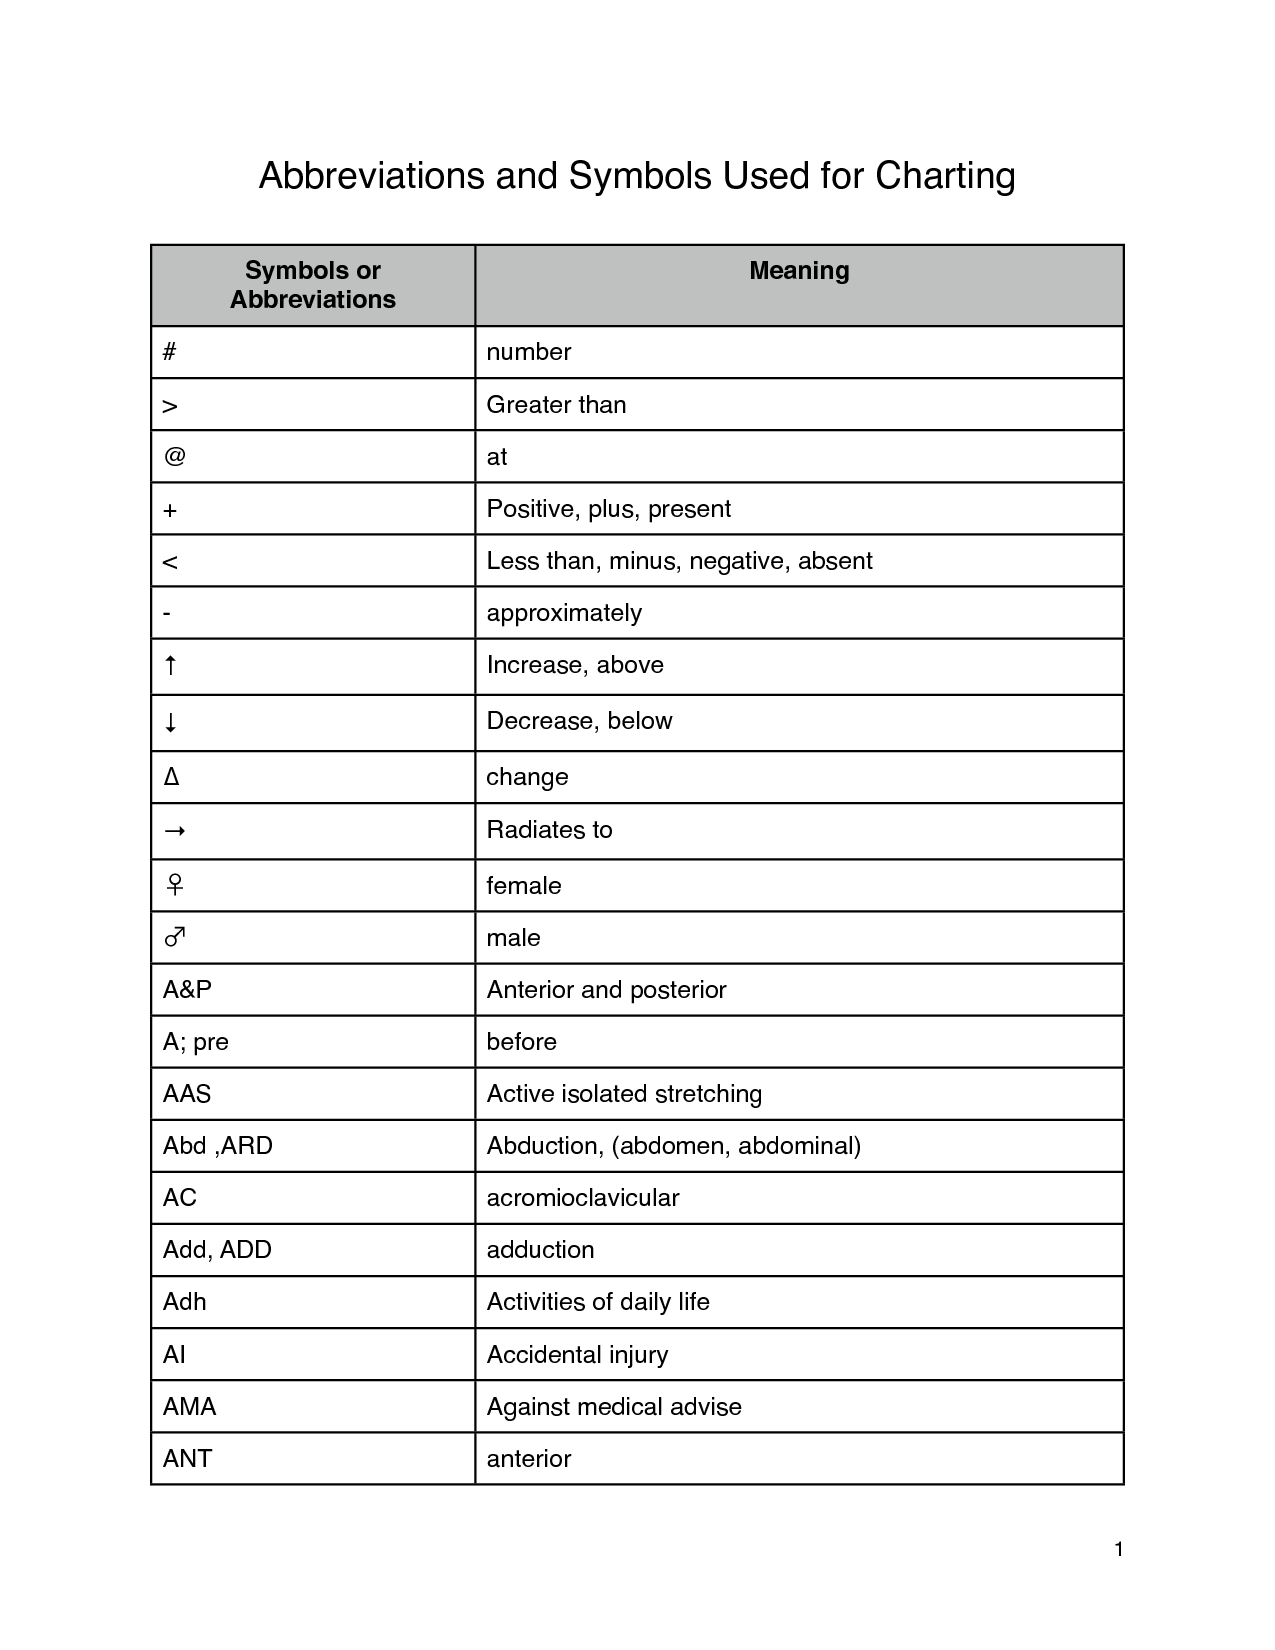 Dating terminology abbreviations